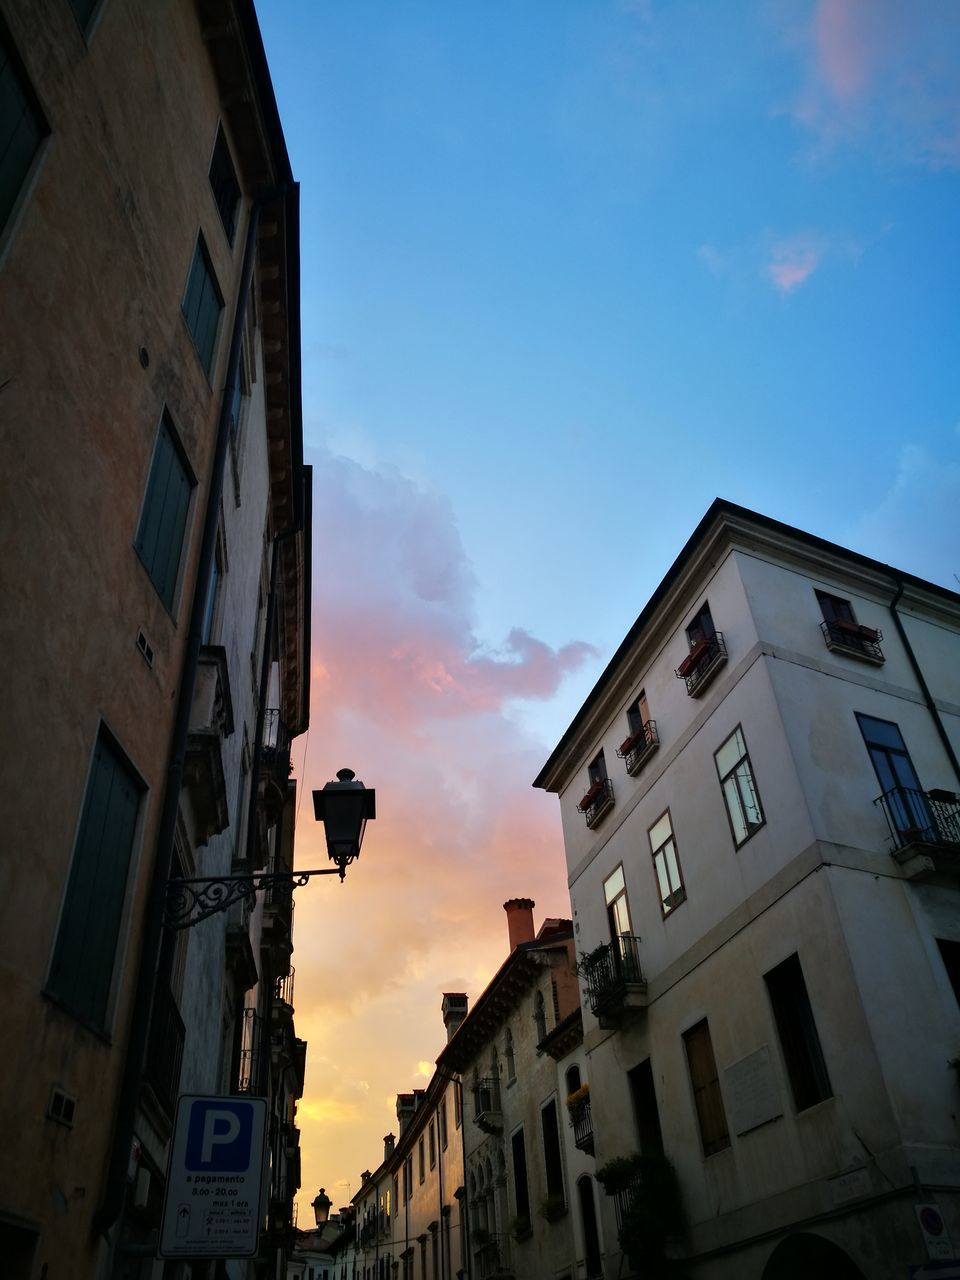 building exterior, architecture, built structure, sky, building, low angle view, residential building, outdoors, no people, city, sunset, day